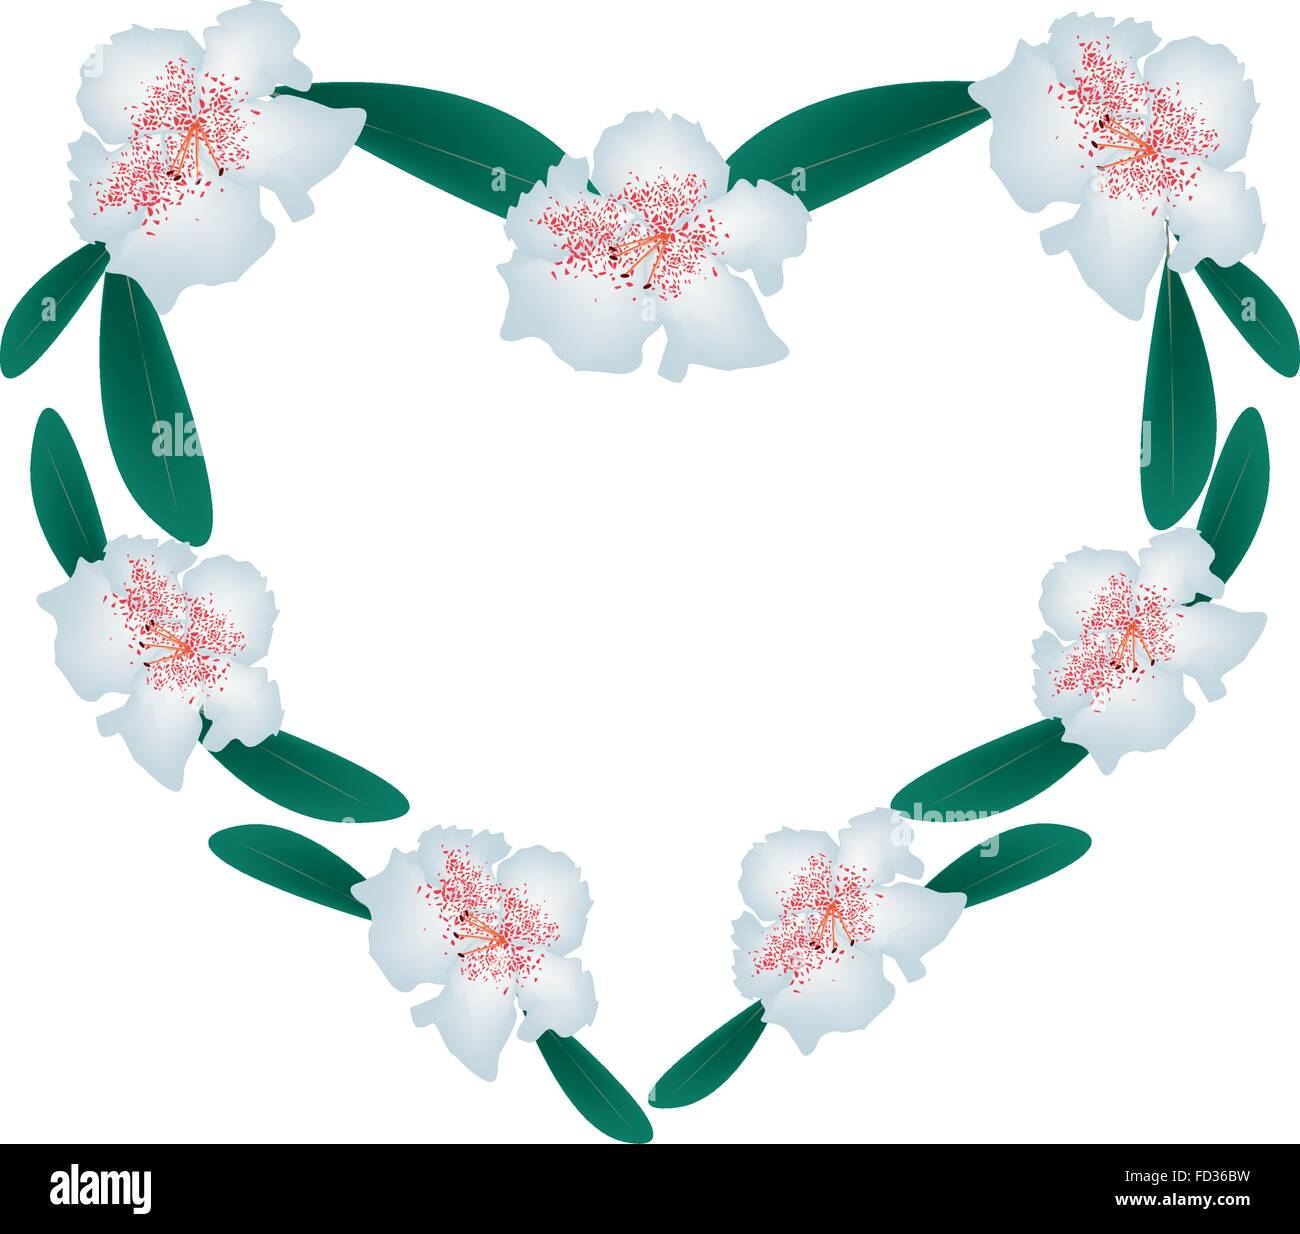 Love Concept, Illustration of White Rhododendron Flowers Forming in Heart Shape Isolated on White Background. - Stock Vector